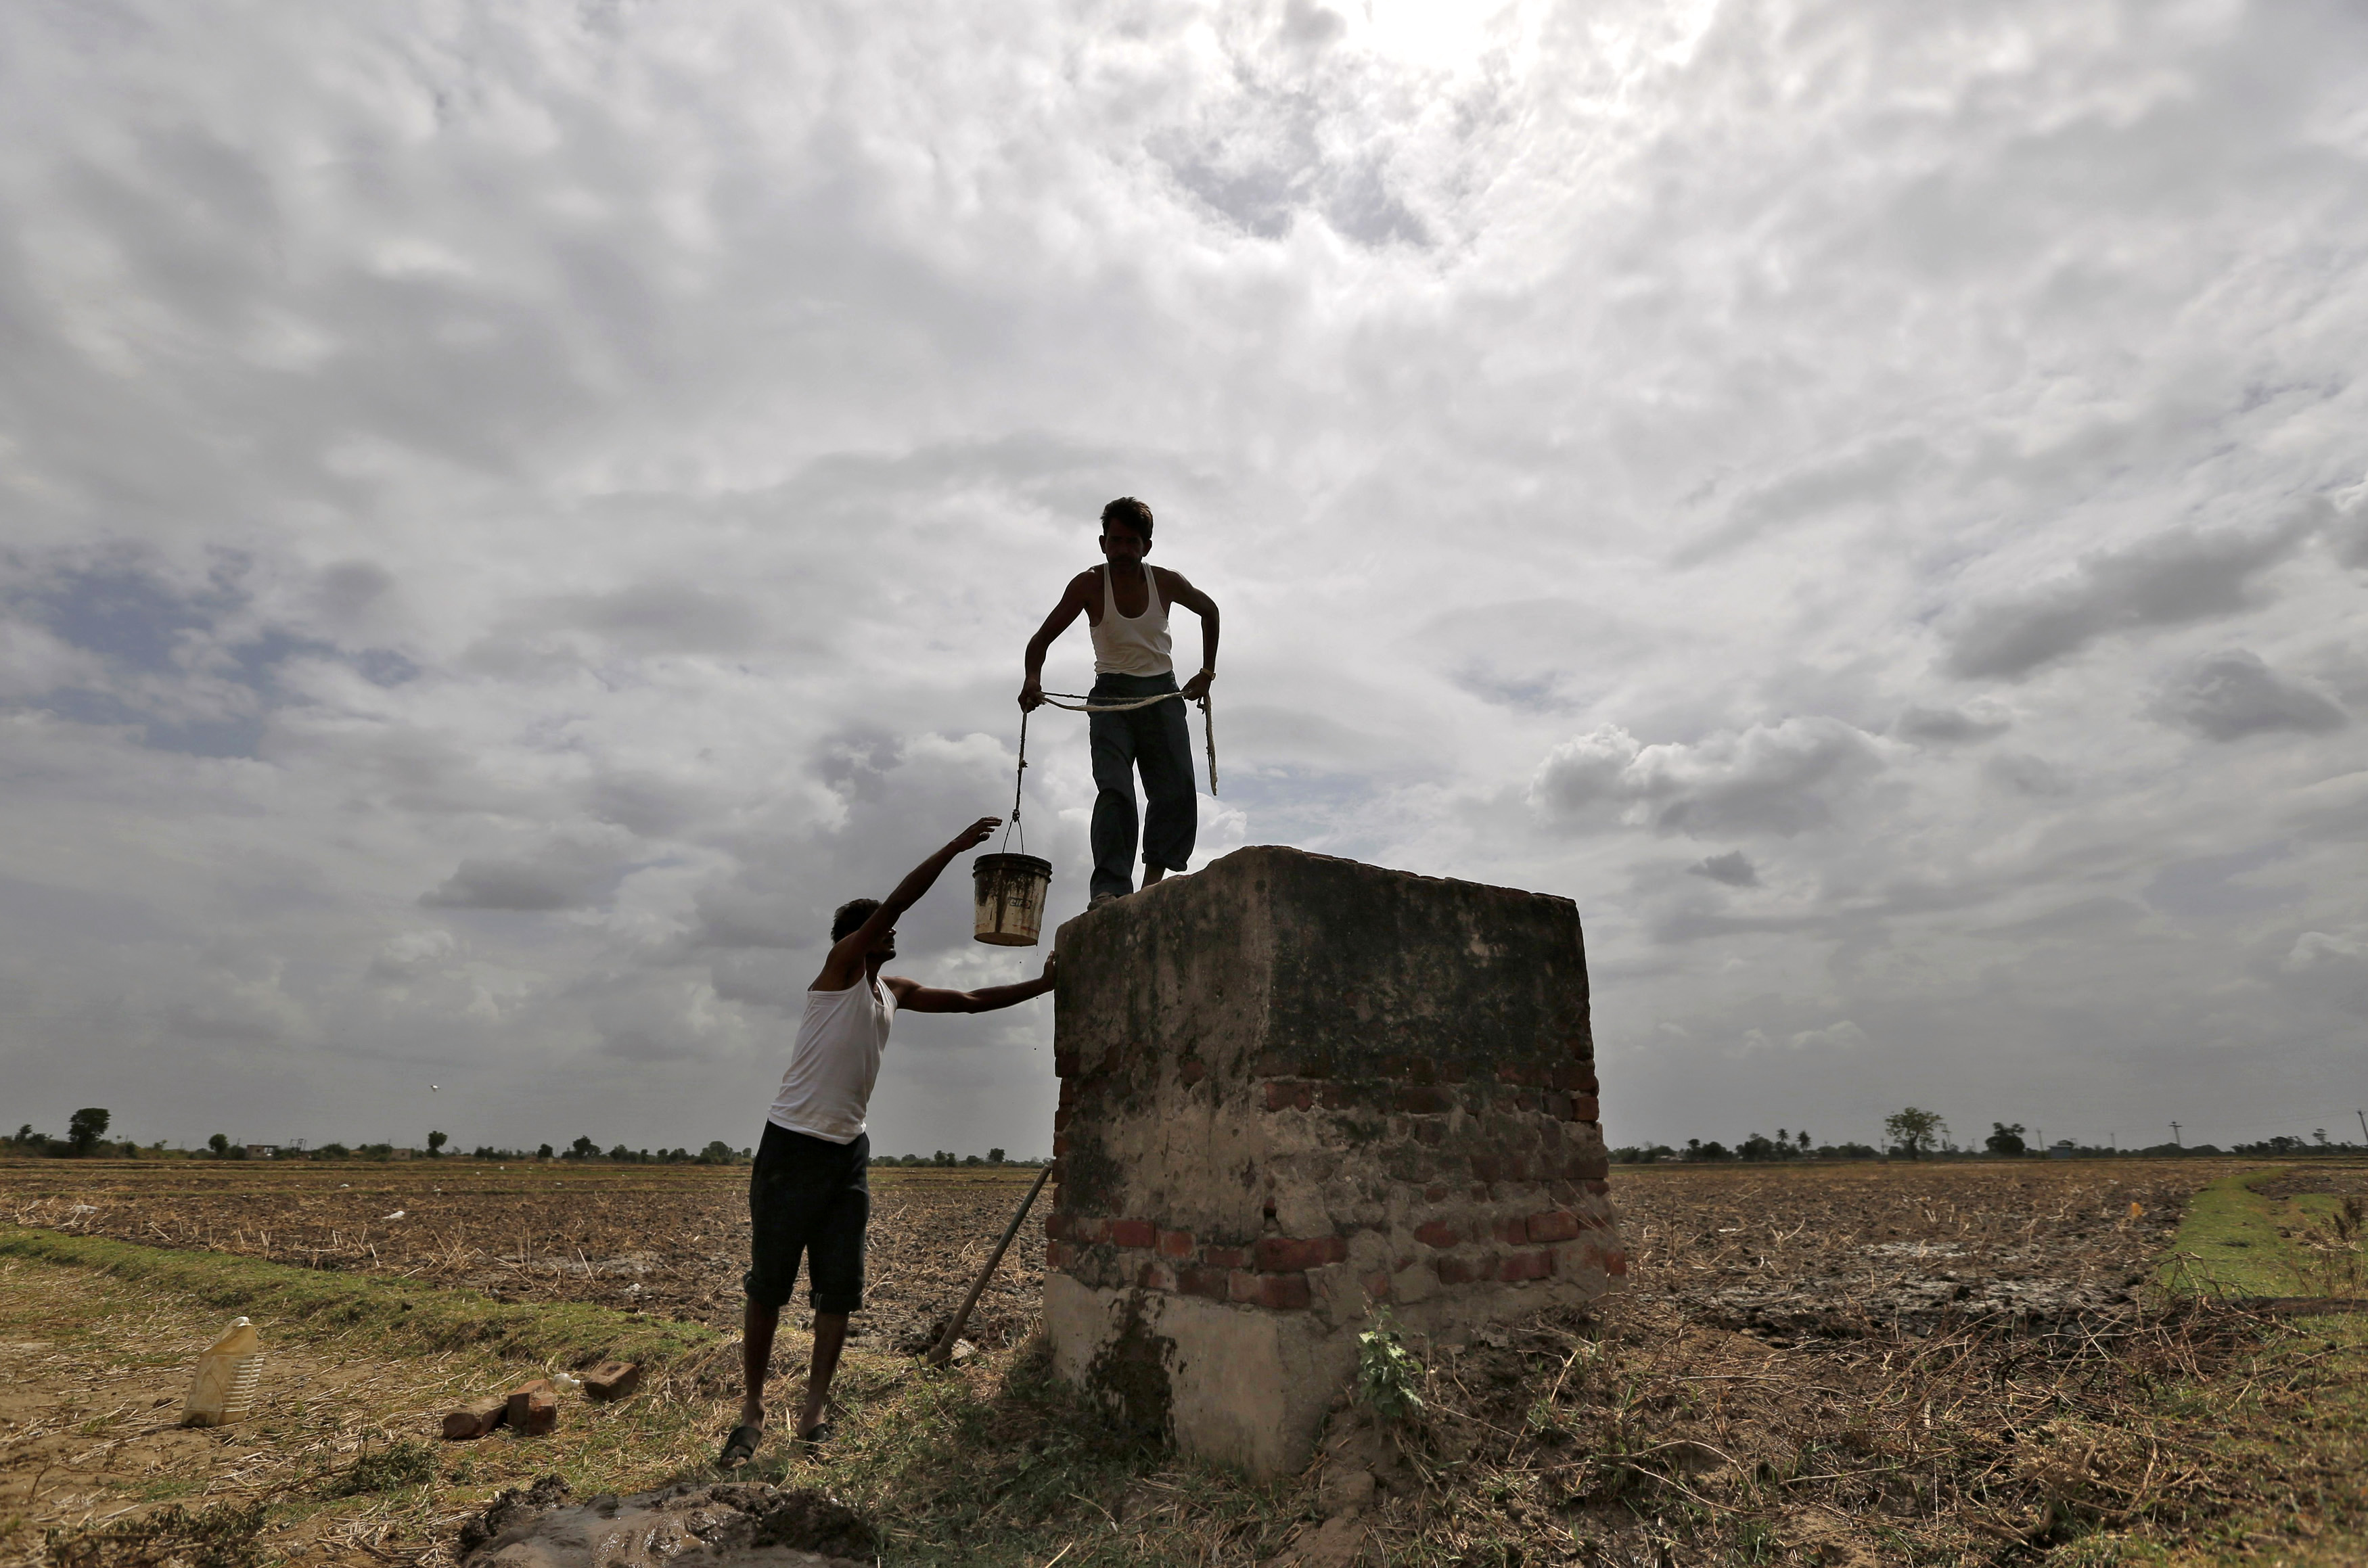 """Farmers are pictured under monsoon clouds as they clean a canal water tank at Shantipura village in the western Indian state of Gujarat July 2, 2014. Rains are forecast to gain momentum over most of the country early this month, but the farm minister said on Tuesday that a """"drought-like situation might prevail in some pockets"""" of western India. REUTERS/Amit Dave (INDIA - Tags: AGRICULTURE ENVIRONMENT SOCIETY) - GM1EA721IJD01"""